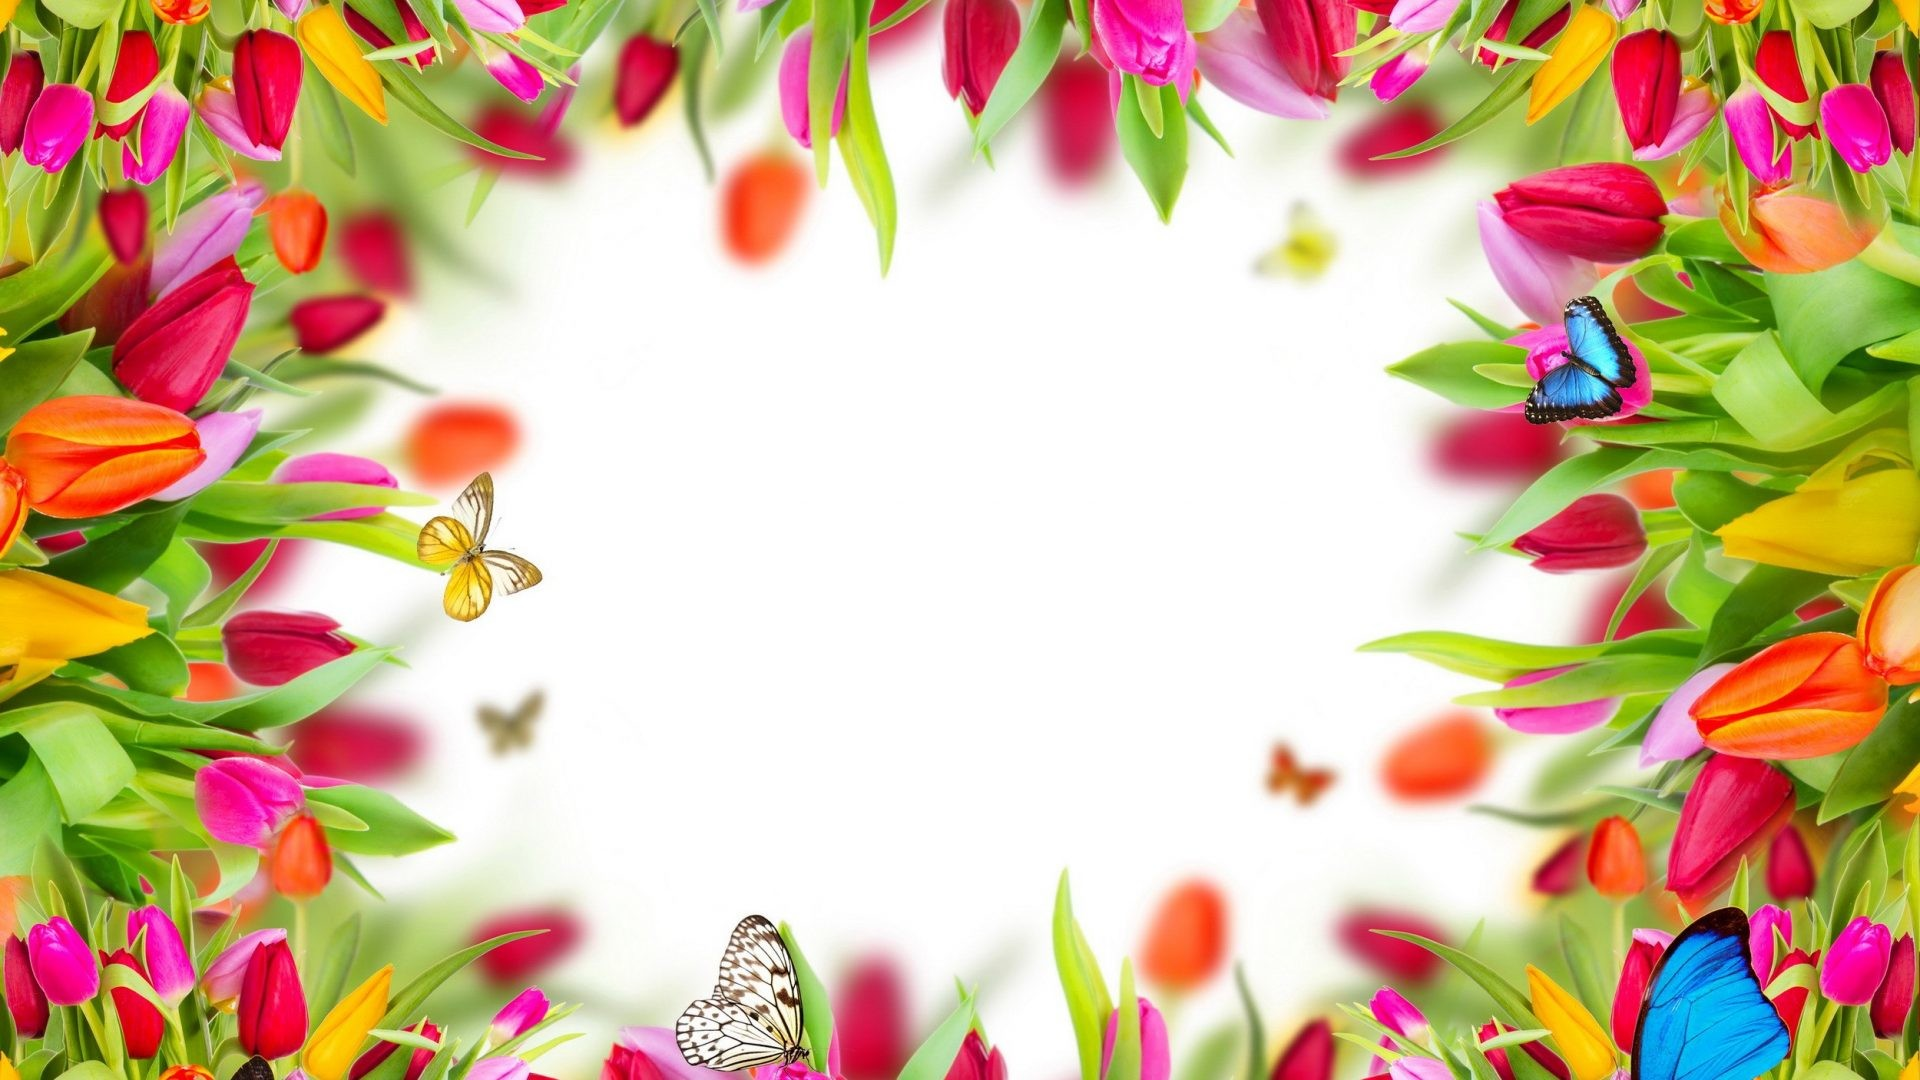 1920x1080 Spring Flowers Tulips Frame Butterflies Colorful Desktop Backgrounds -  2500x2300